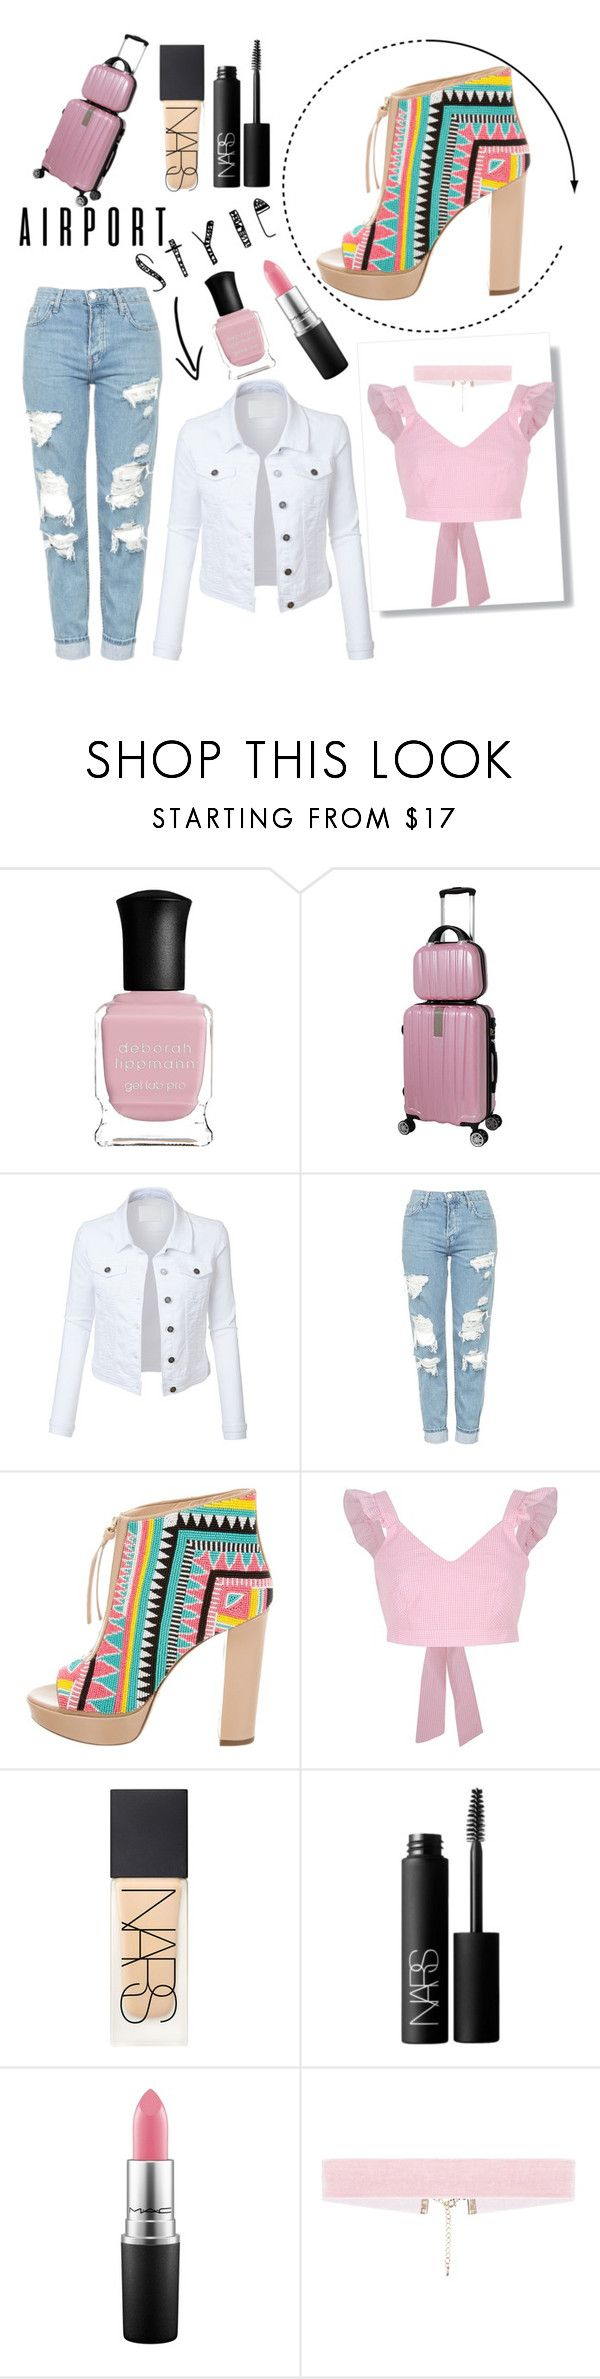 """""""Airport Style"""" by paige2206 ❤ liked on Polyvore featuring Deborah Lippmann, LE3NO, Topshop, Jerome C. Rousseau, River Island and NARS Cosmetics"""